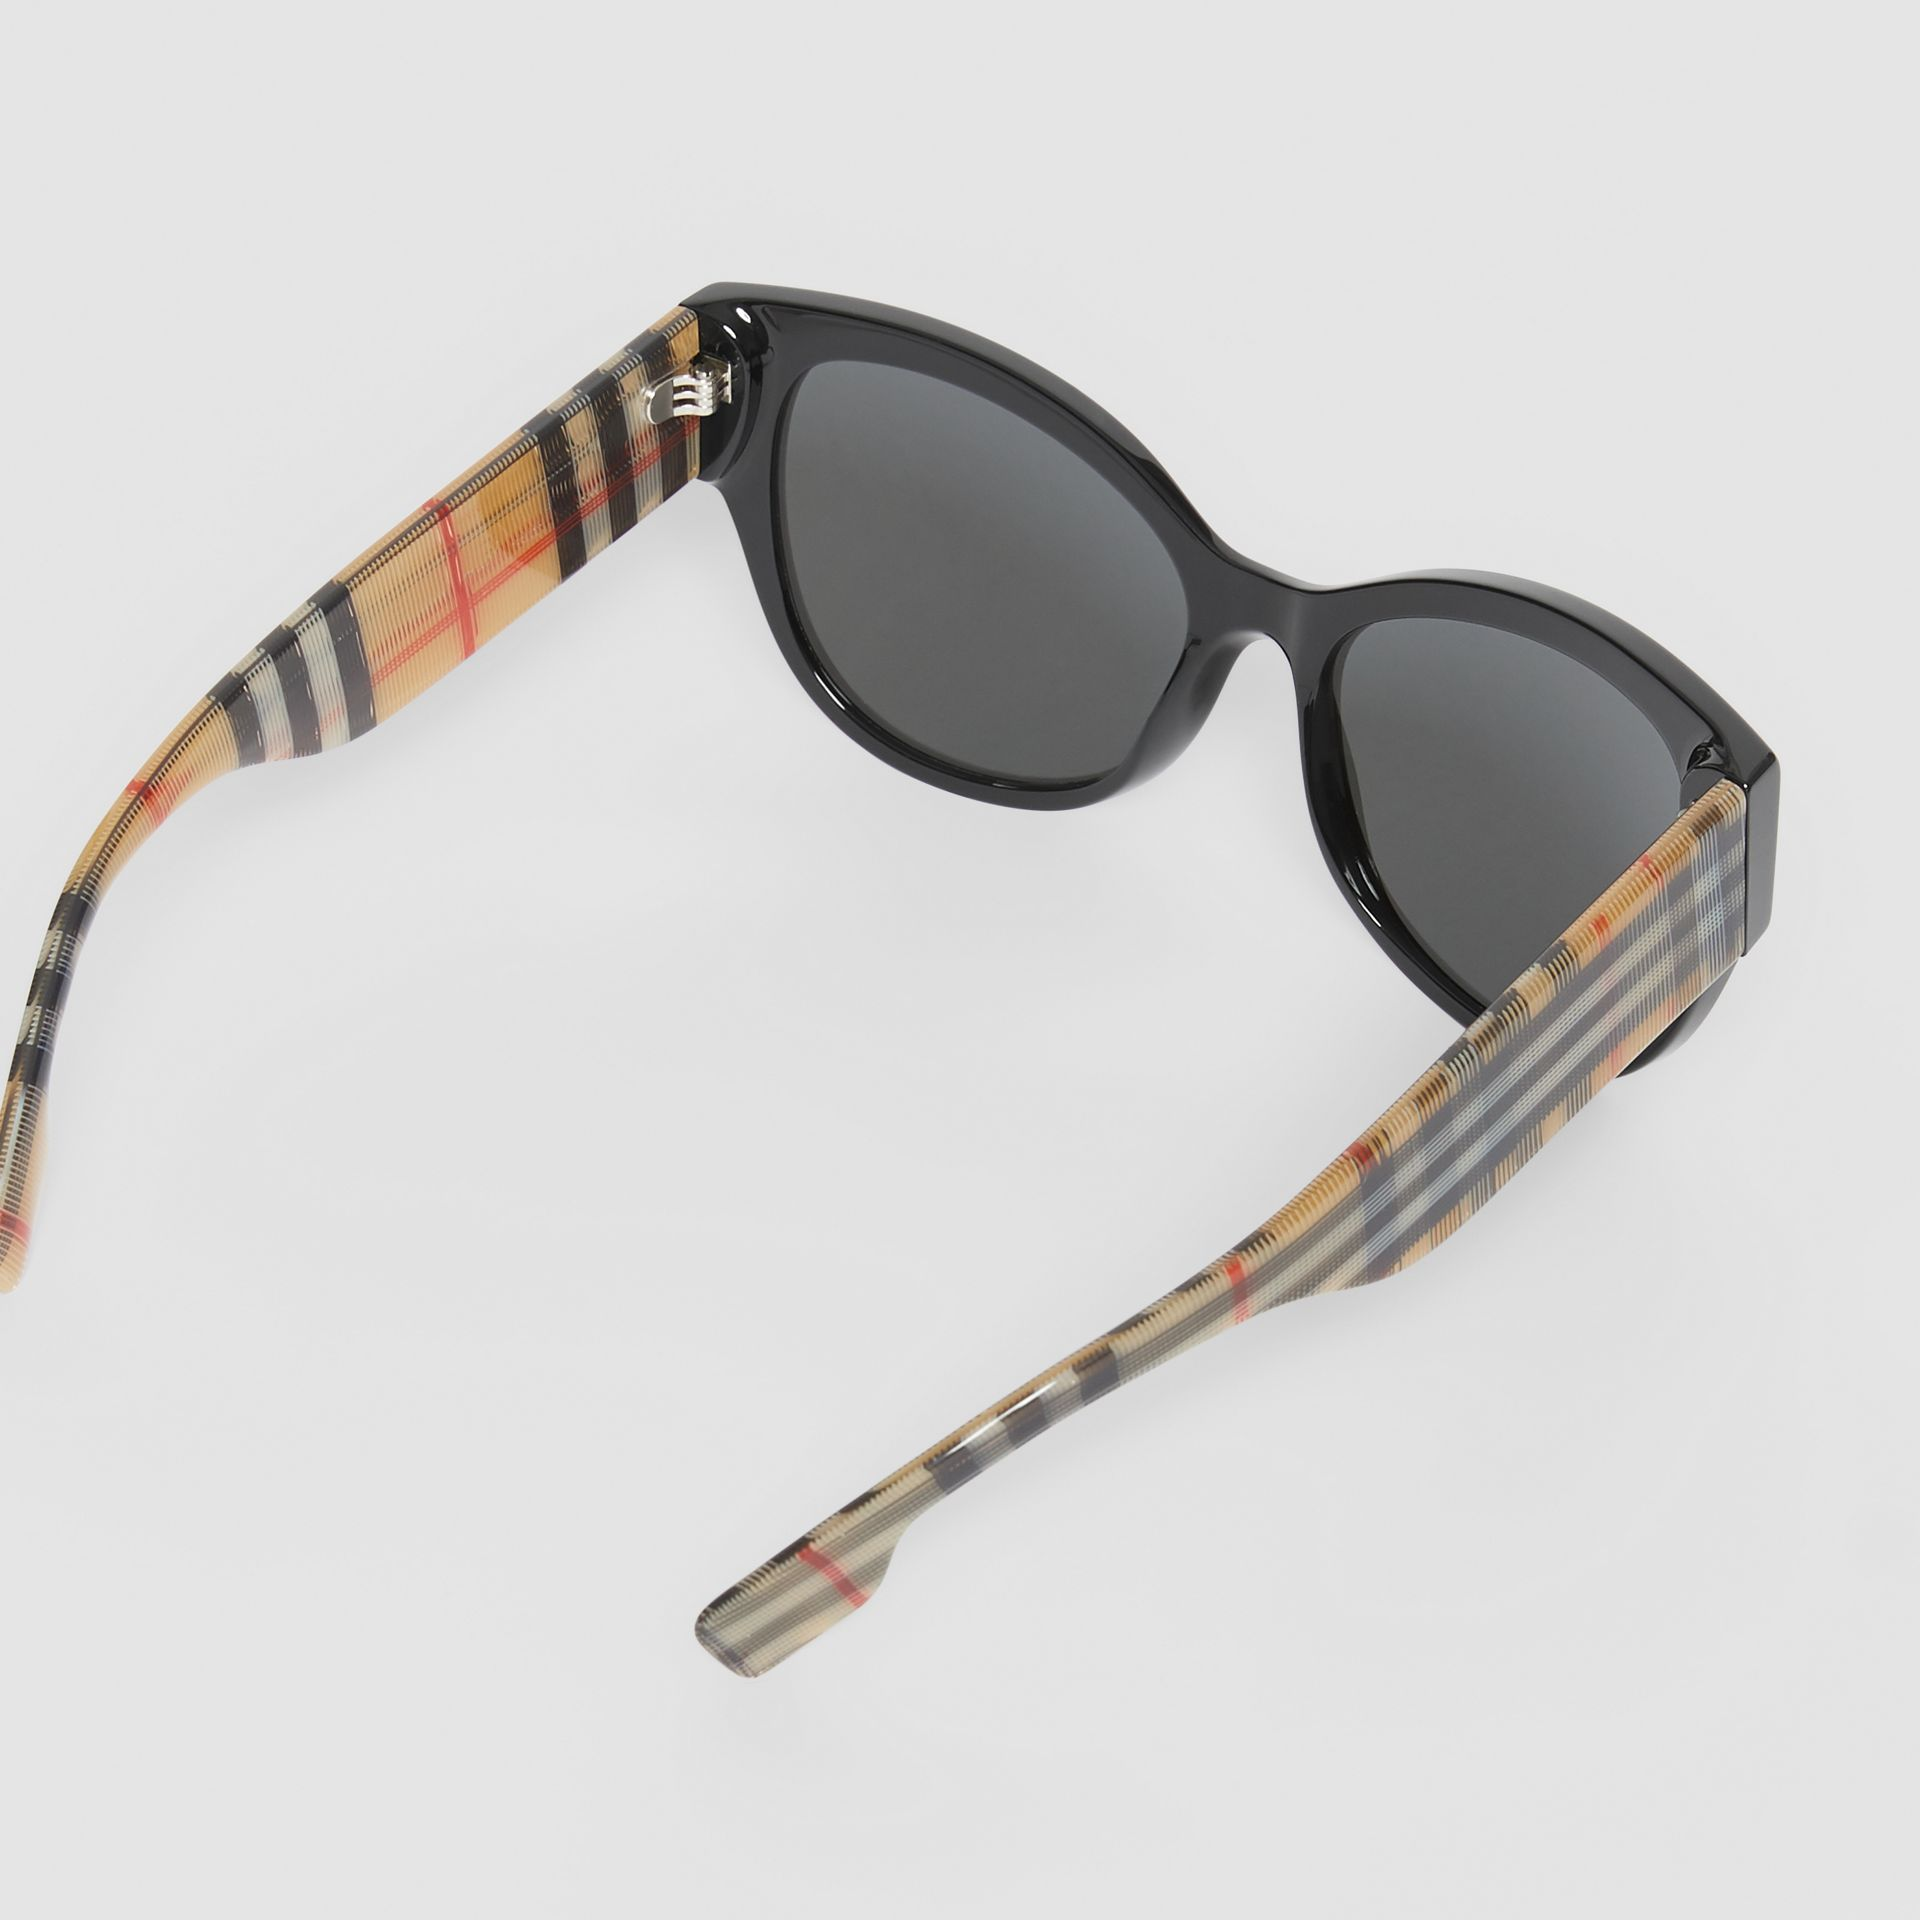 Vintage Check Detail Butterfly Frame Sunglasses in Black / Beige - Women | Burberry - gallery image 4